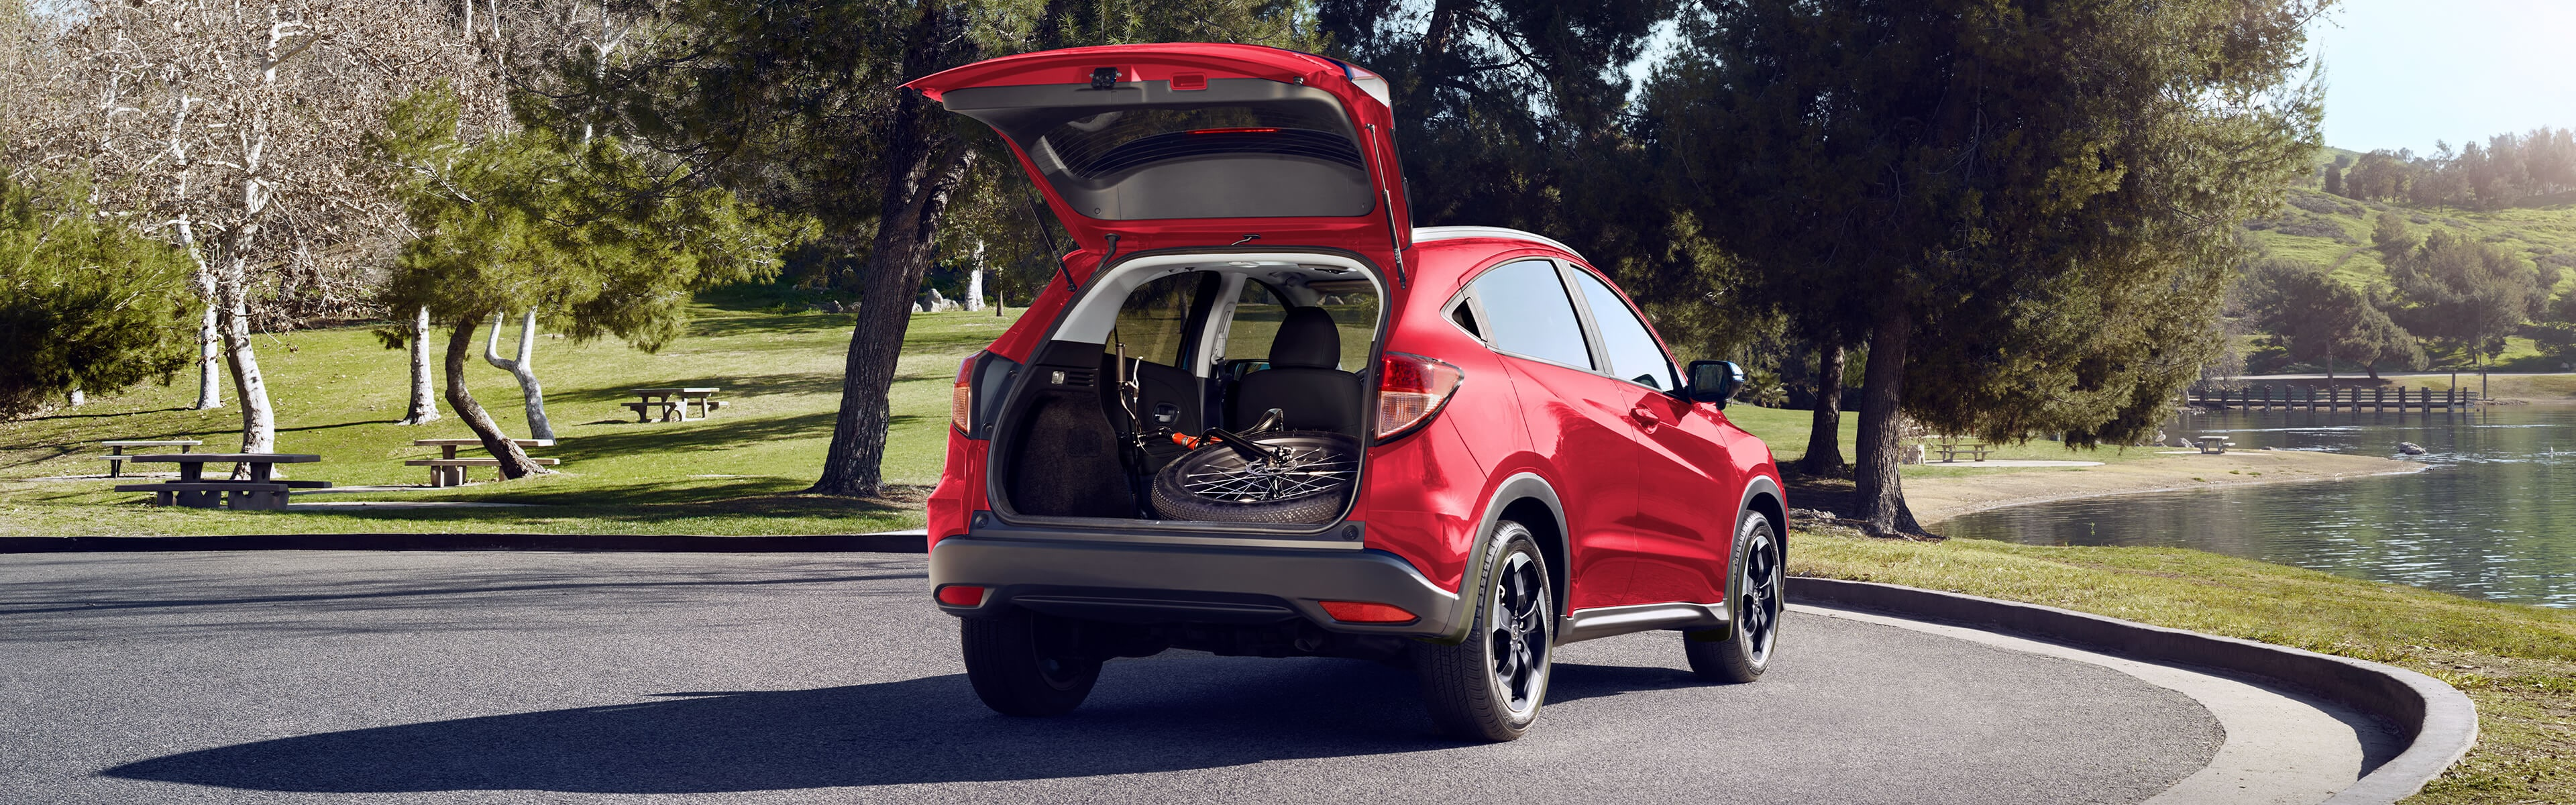 Image of 2017 HR-V